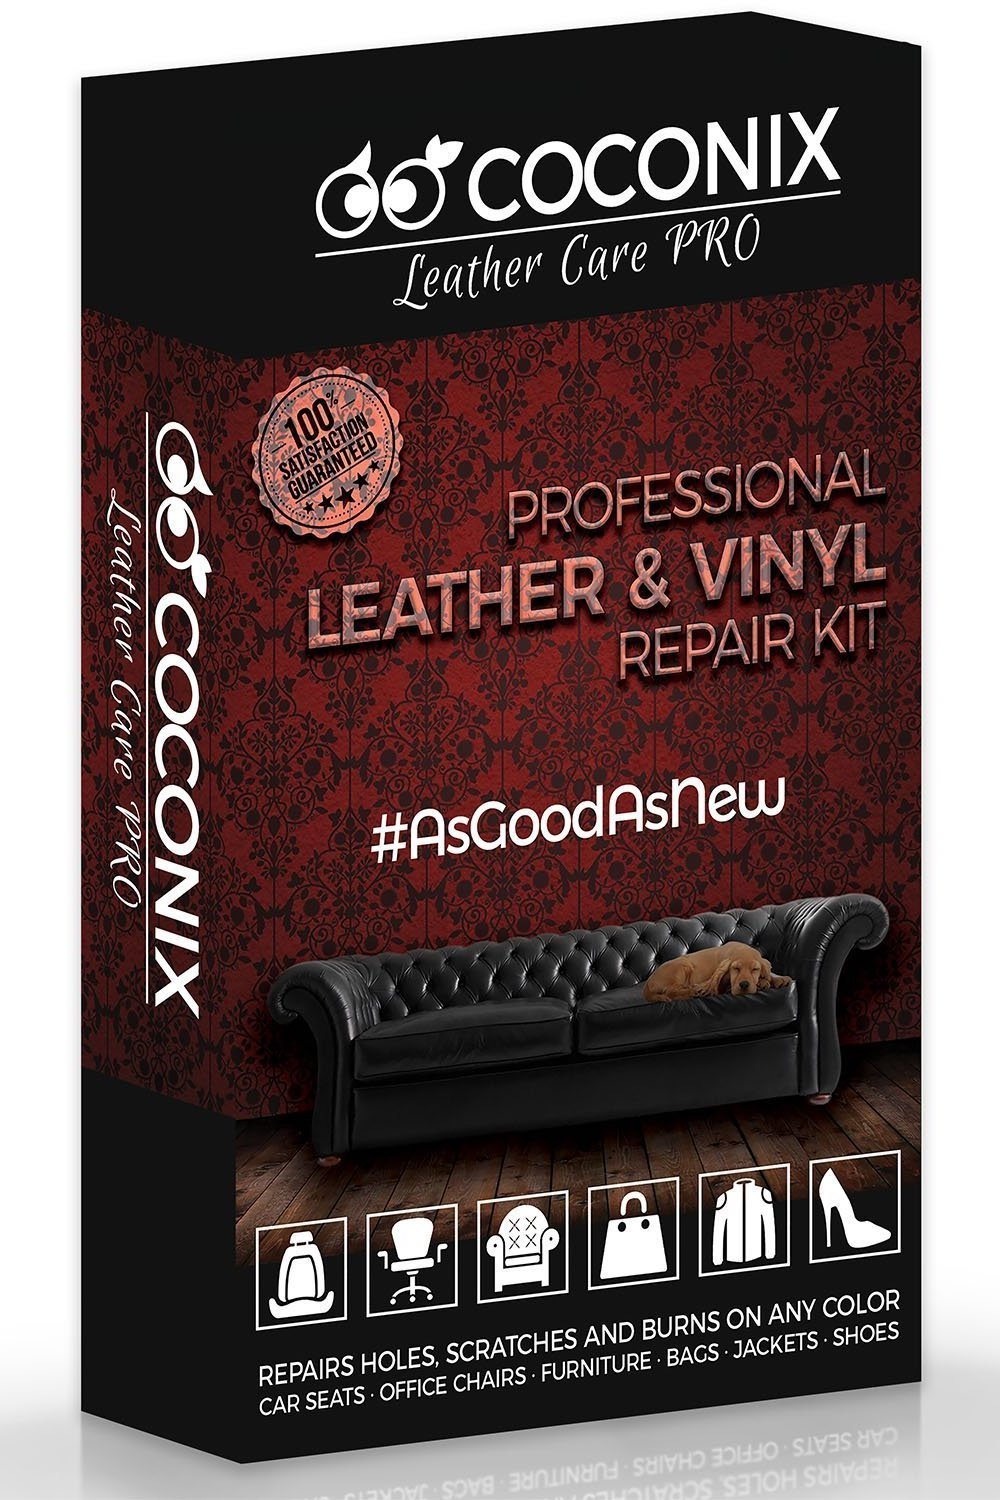 leather and vinyl repair kit instructions